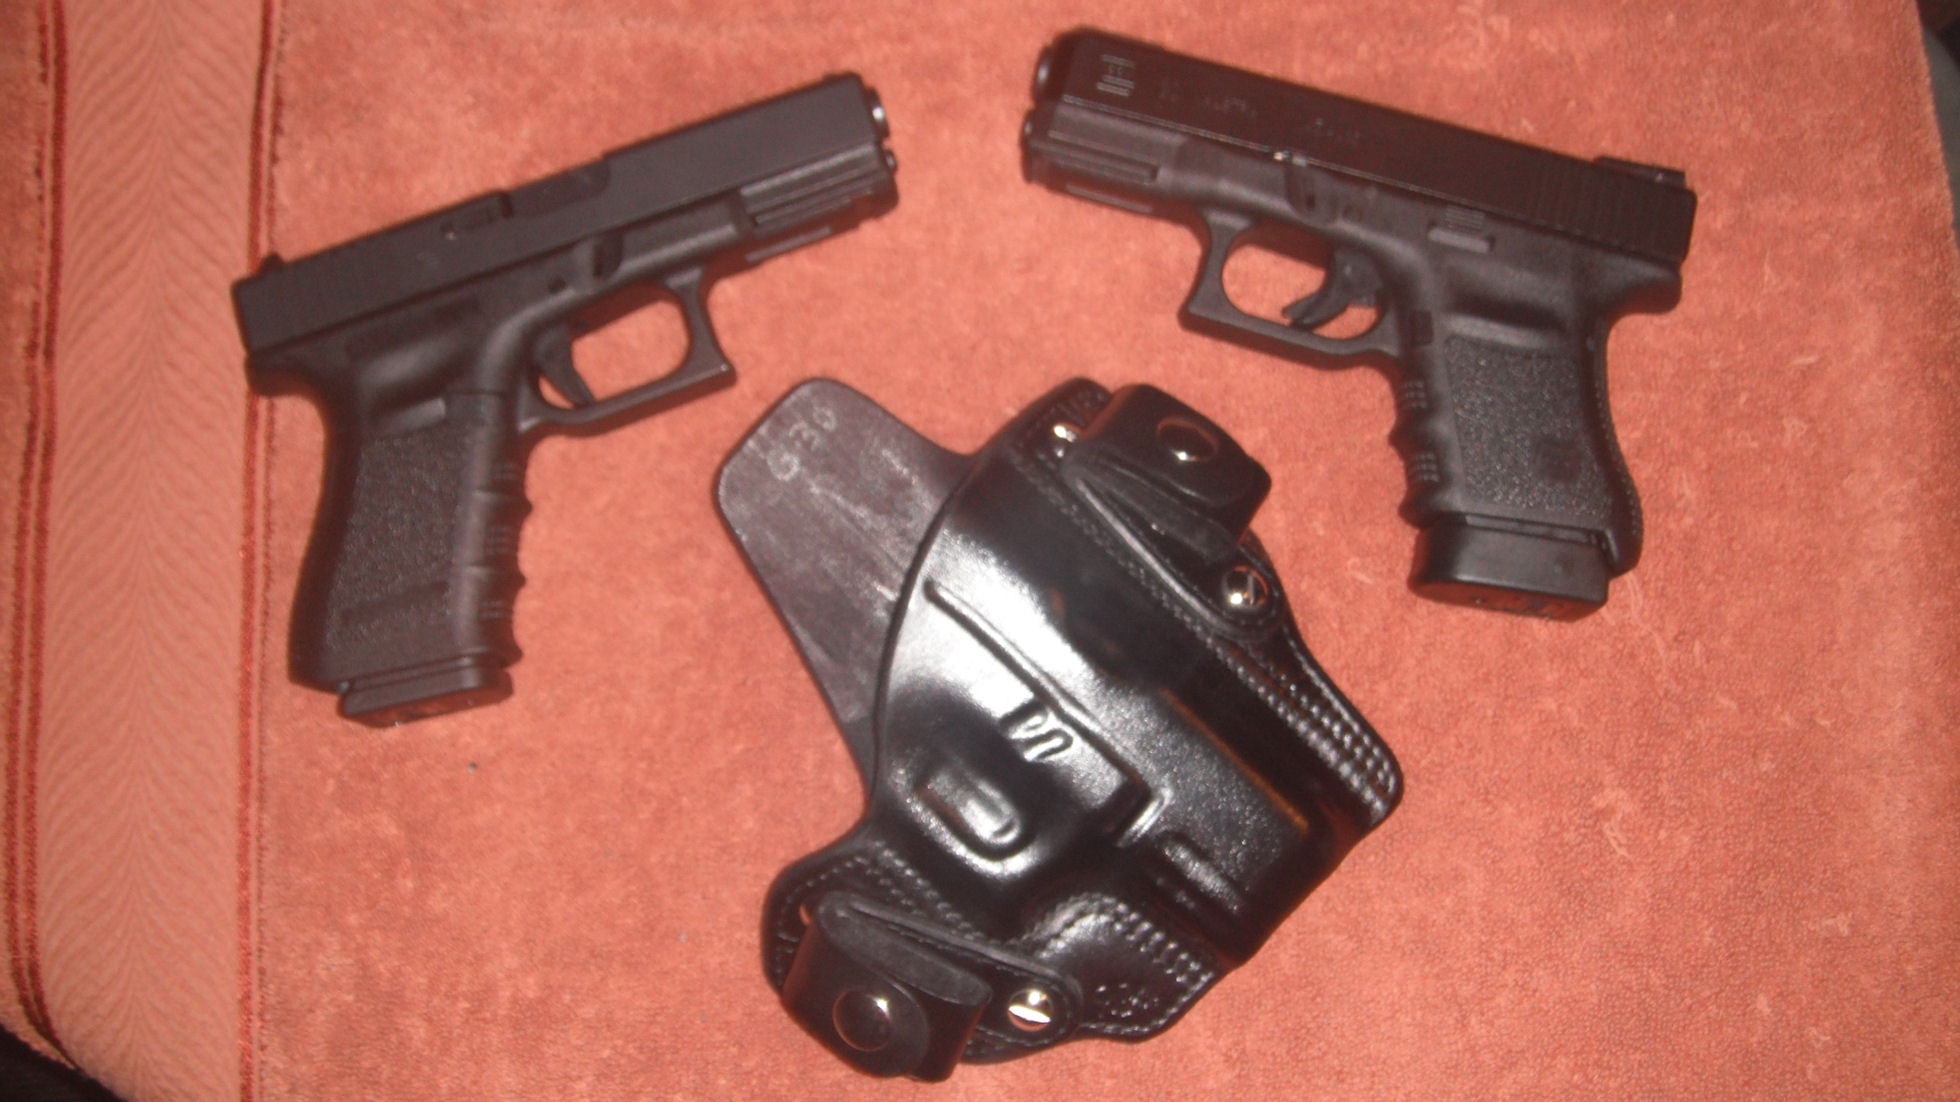 Pics of the new Glocks and leather from Rocky.-toms-pics-115.jpg